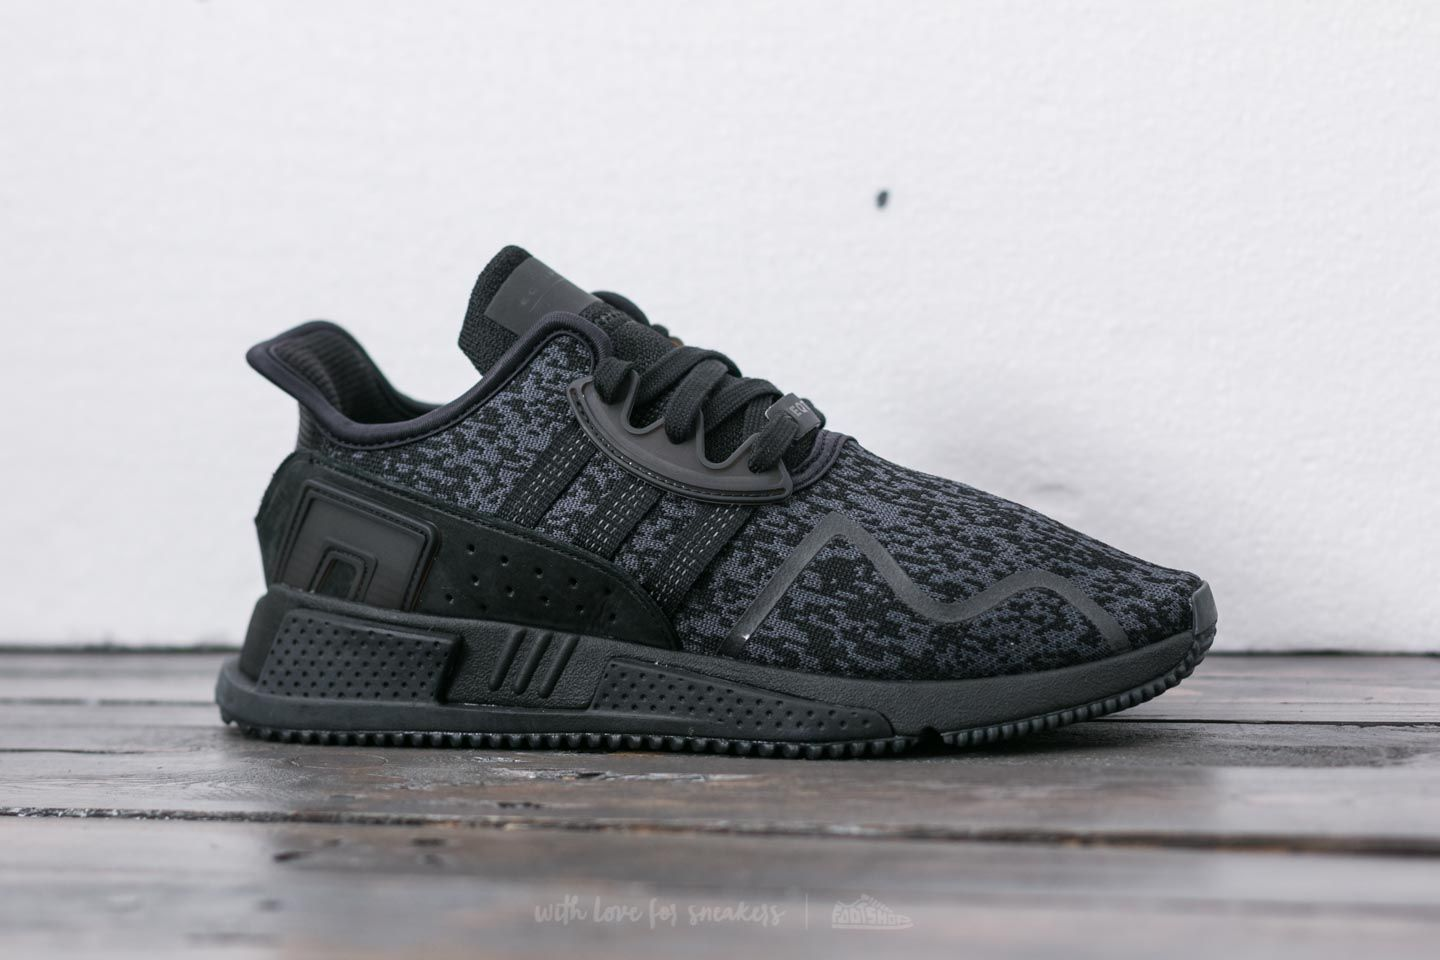 half off f6fc4 4dd98 adidas EQT Cushion ADV Core Black/ Core Black/ Ftw White ...